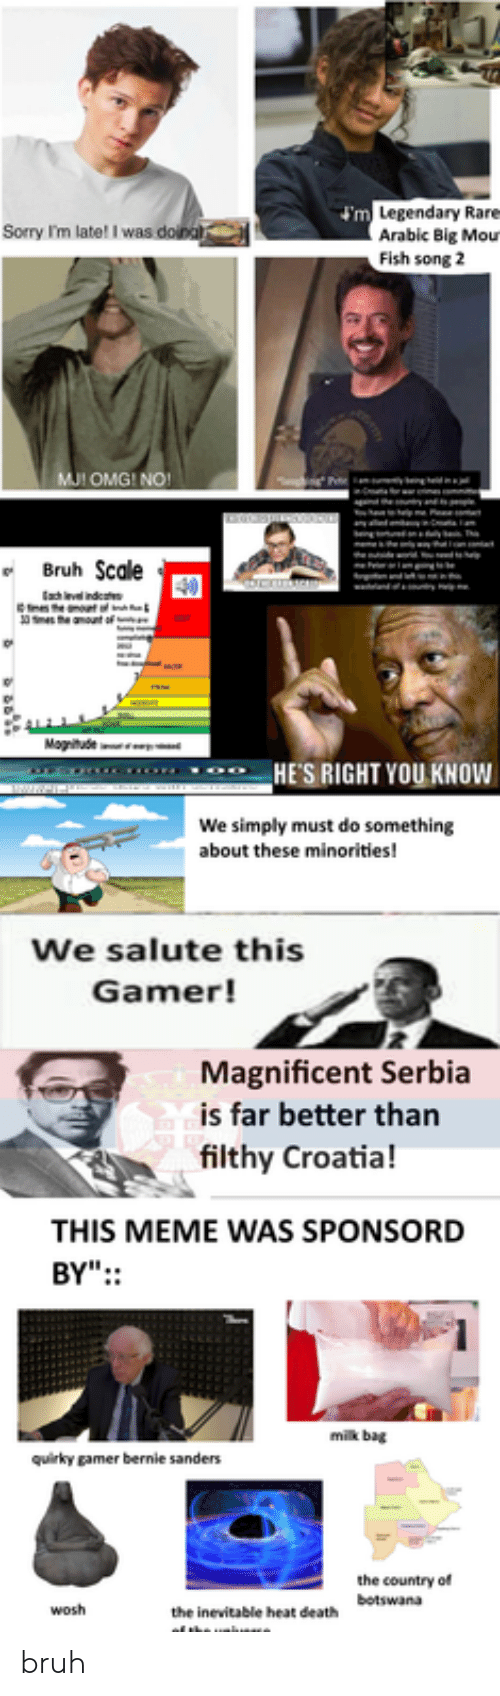 "Bernie Sanders, Bruh, and Meme: m Legendary Rare  Arabic Big Mou  Fish song 2  Sorry I'm late! I was doina  MJI OMG! NO!  ng  Bruh Scale  Fr  m  e anount of  Magitude  HE'S RIGHT YOU KNOWw  We simply must do something  about these minorities!  We salute this  Gamer!  Magnificent Serbia  is far better than  filthy Croatia!  THIS MEME WAS SPONSORD  BY"":  milk bag  quirky gamer bernie sanders  the country of  the inevitable heat de  of the unuae  botswana  wosh bruh"